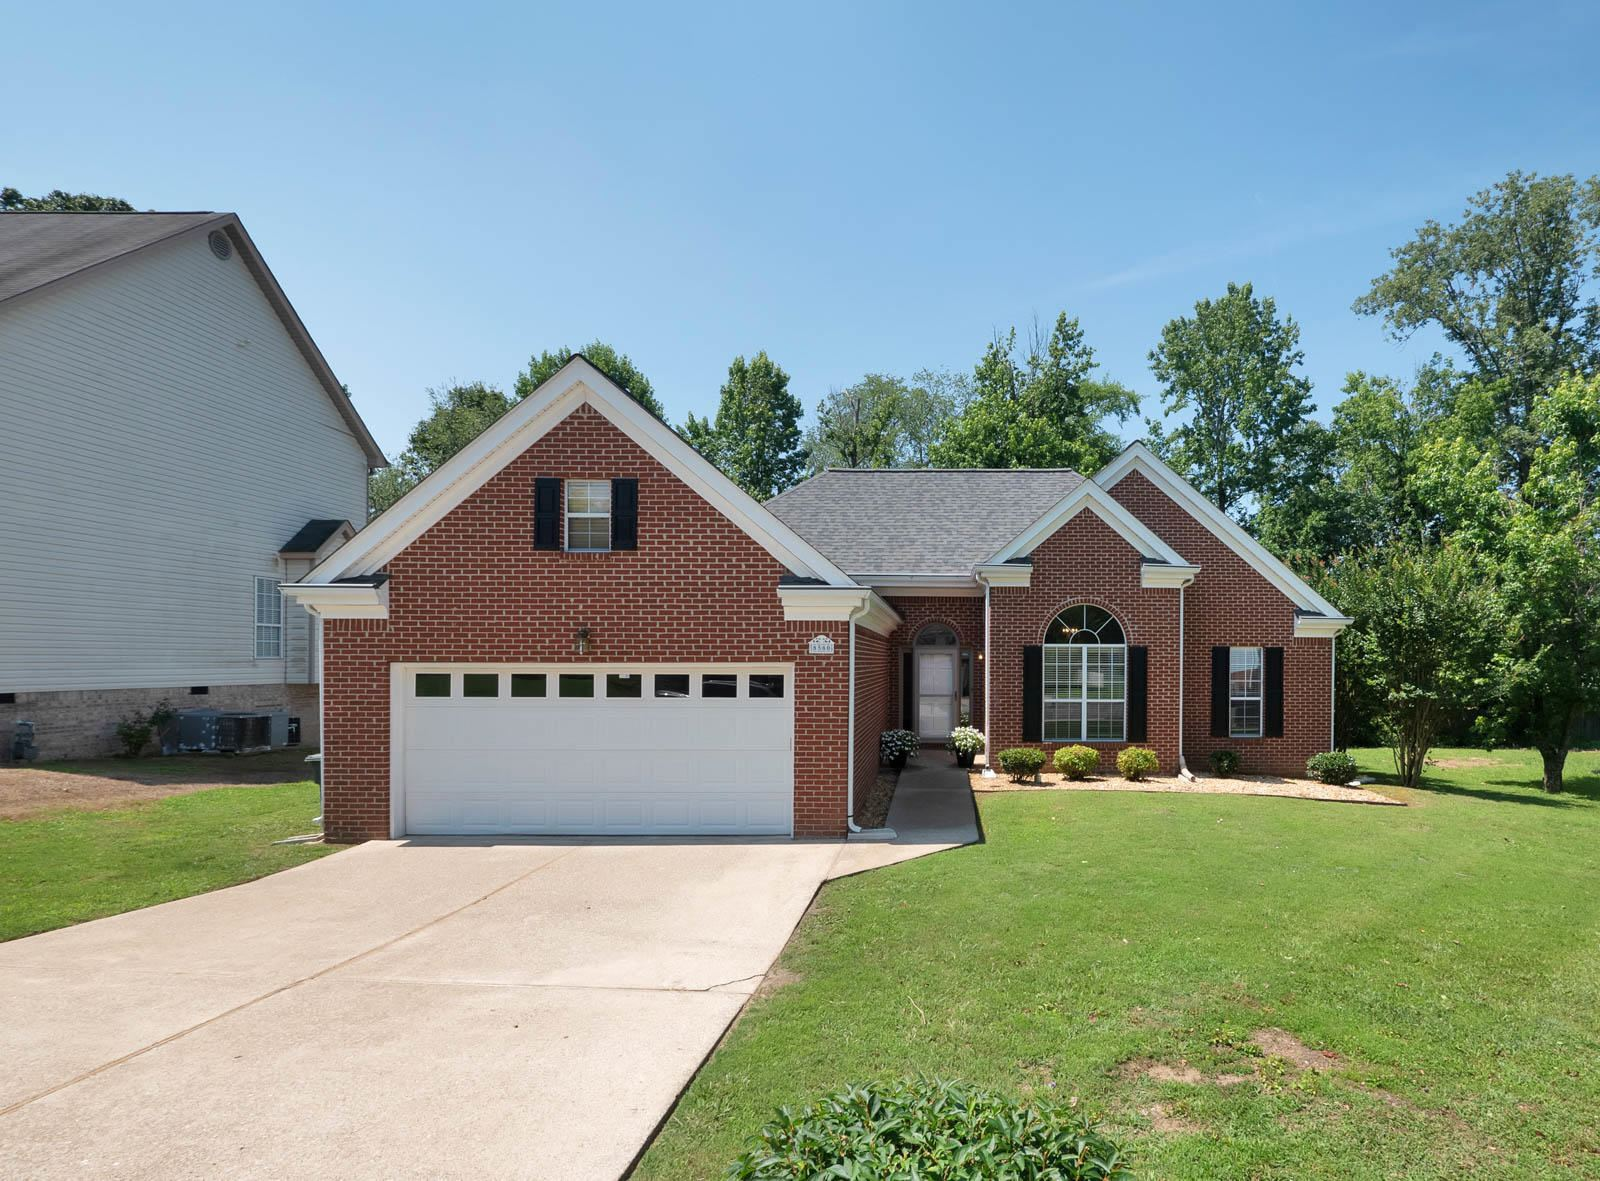 8580 Flowerdale Dr, Chattanooga, TN 37421 - #: 1320541